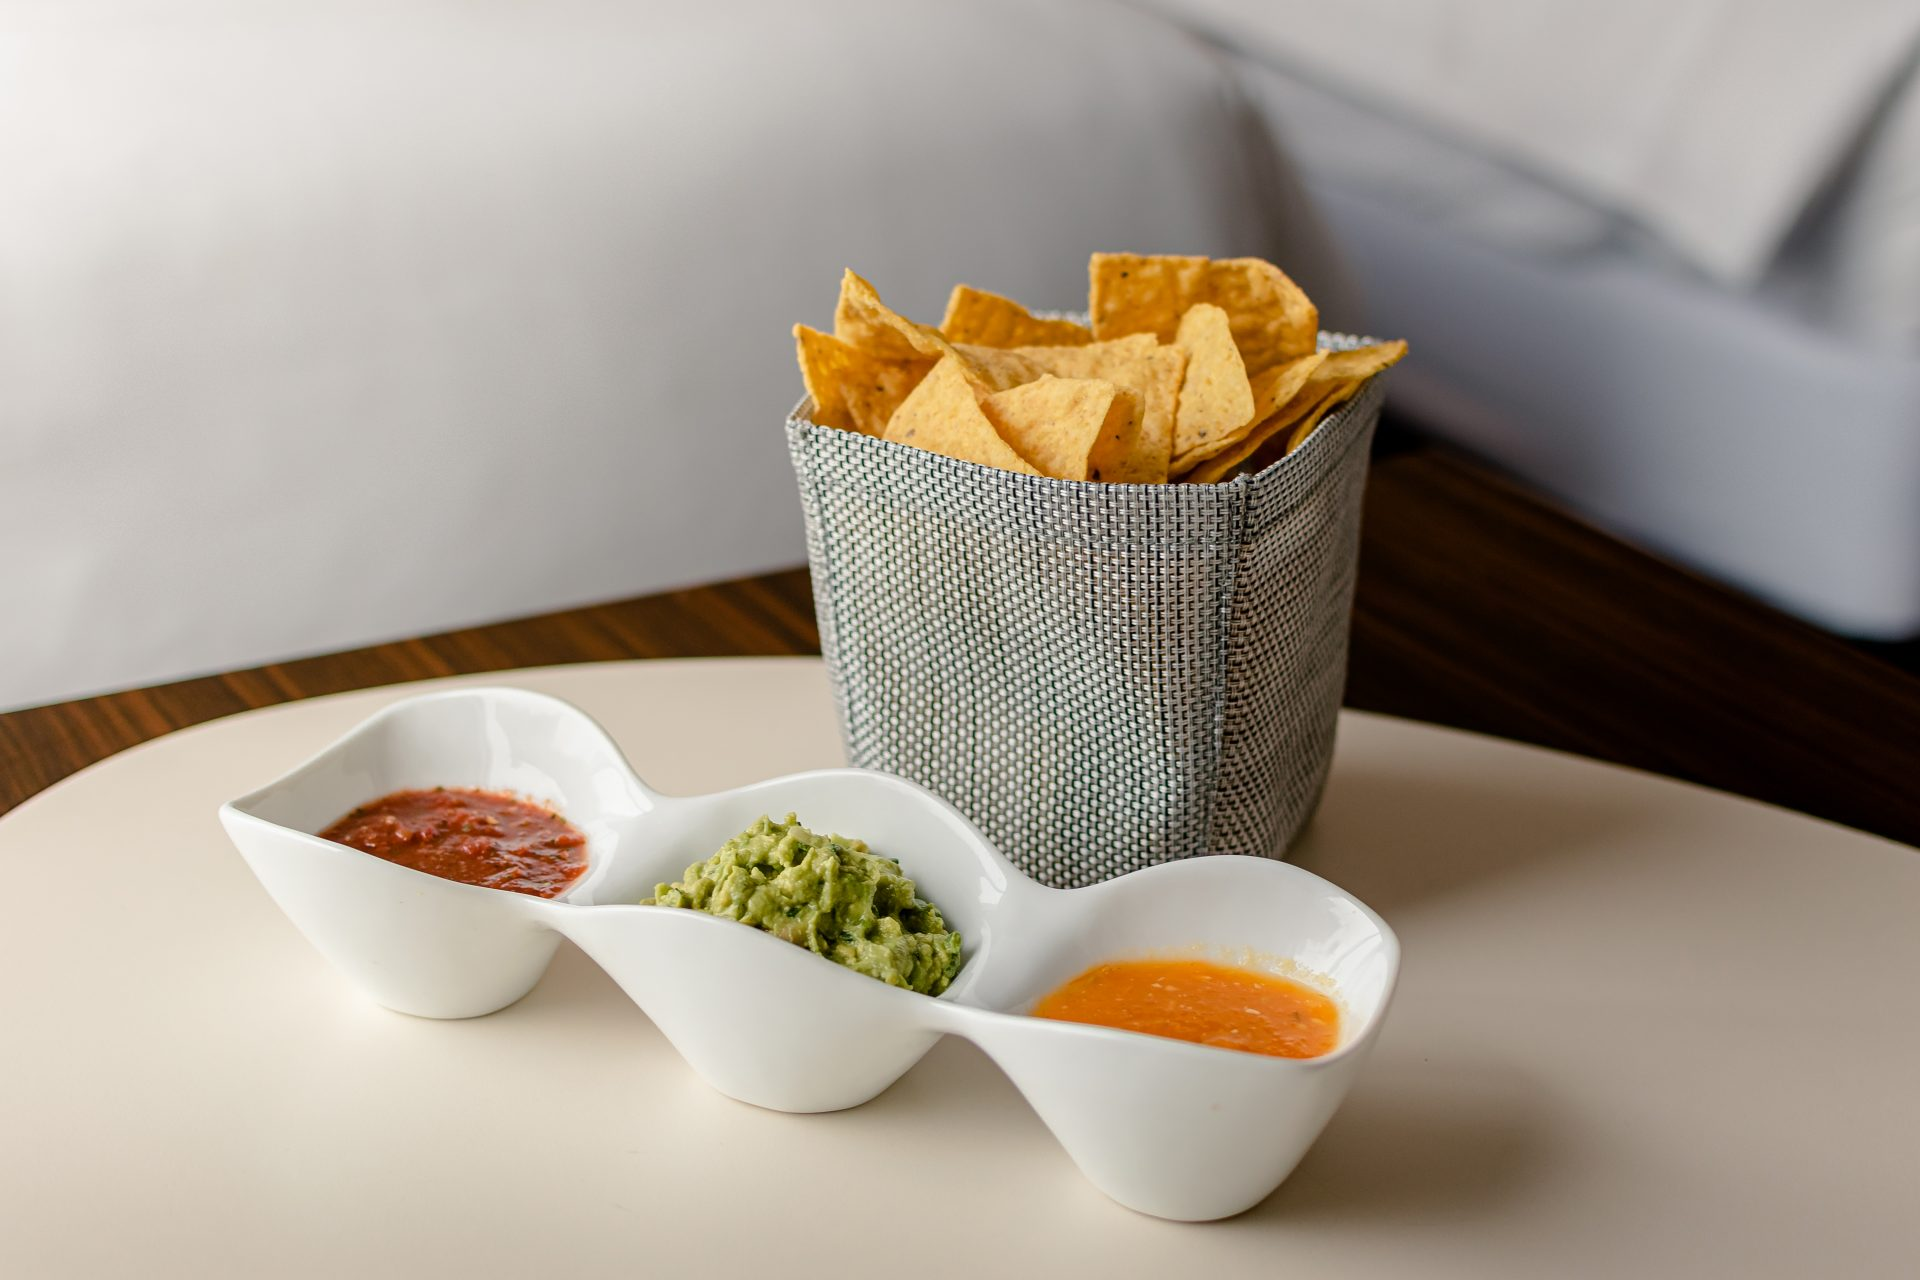 Close up of tortilla chips in woven bag along with ceramic dish with 2 dipping sauces and guacamole